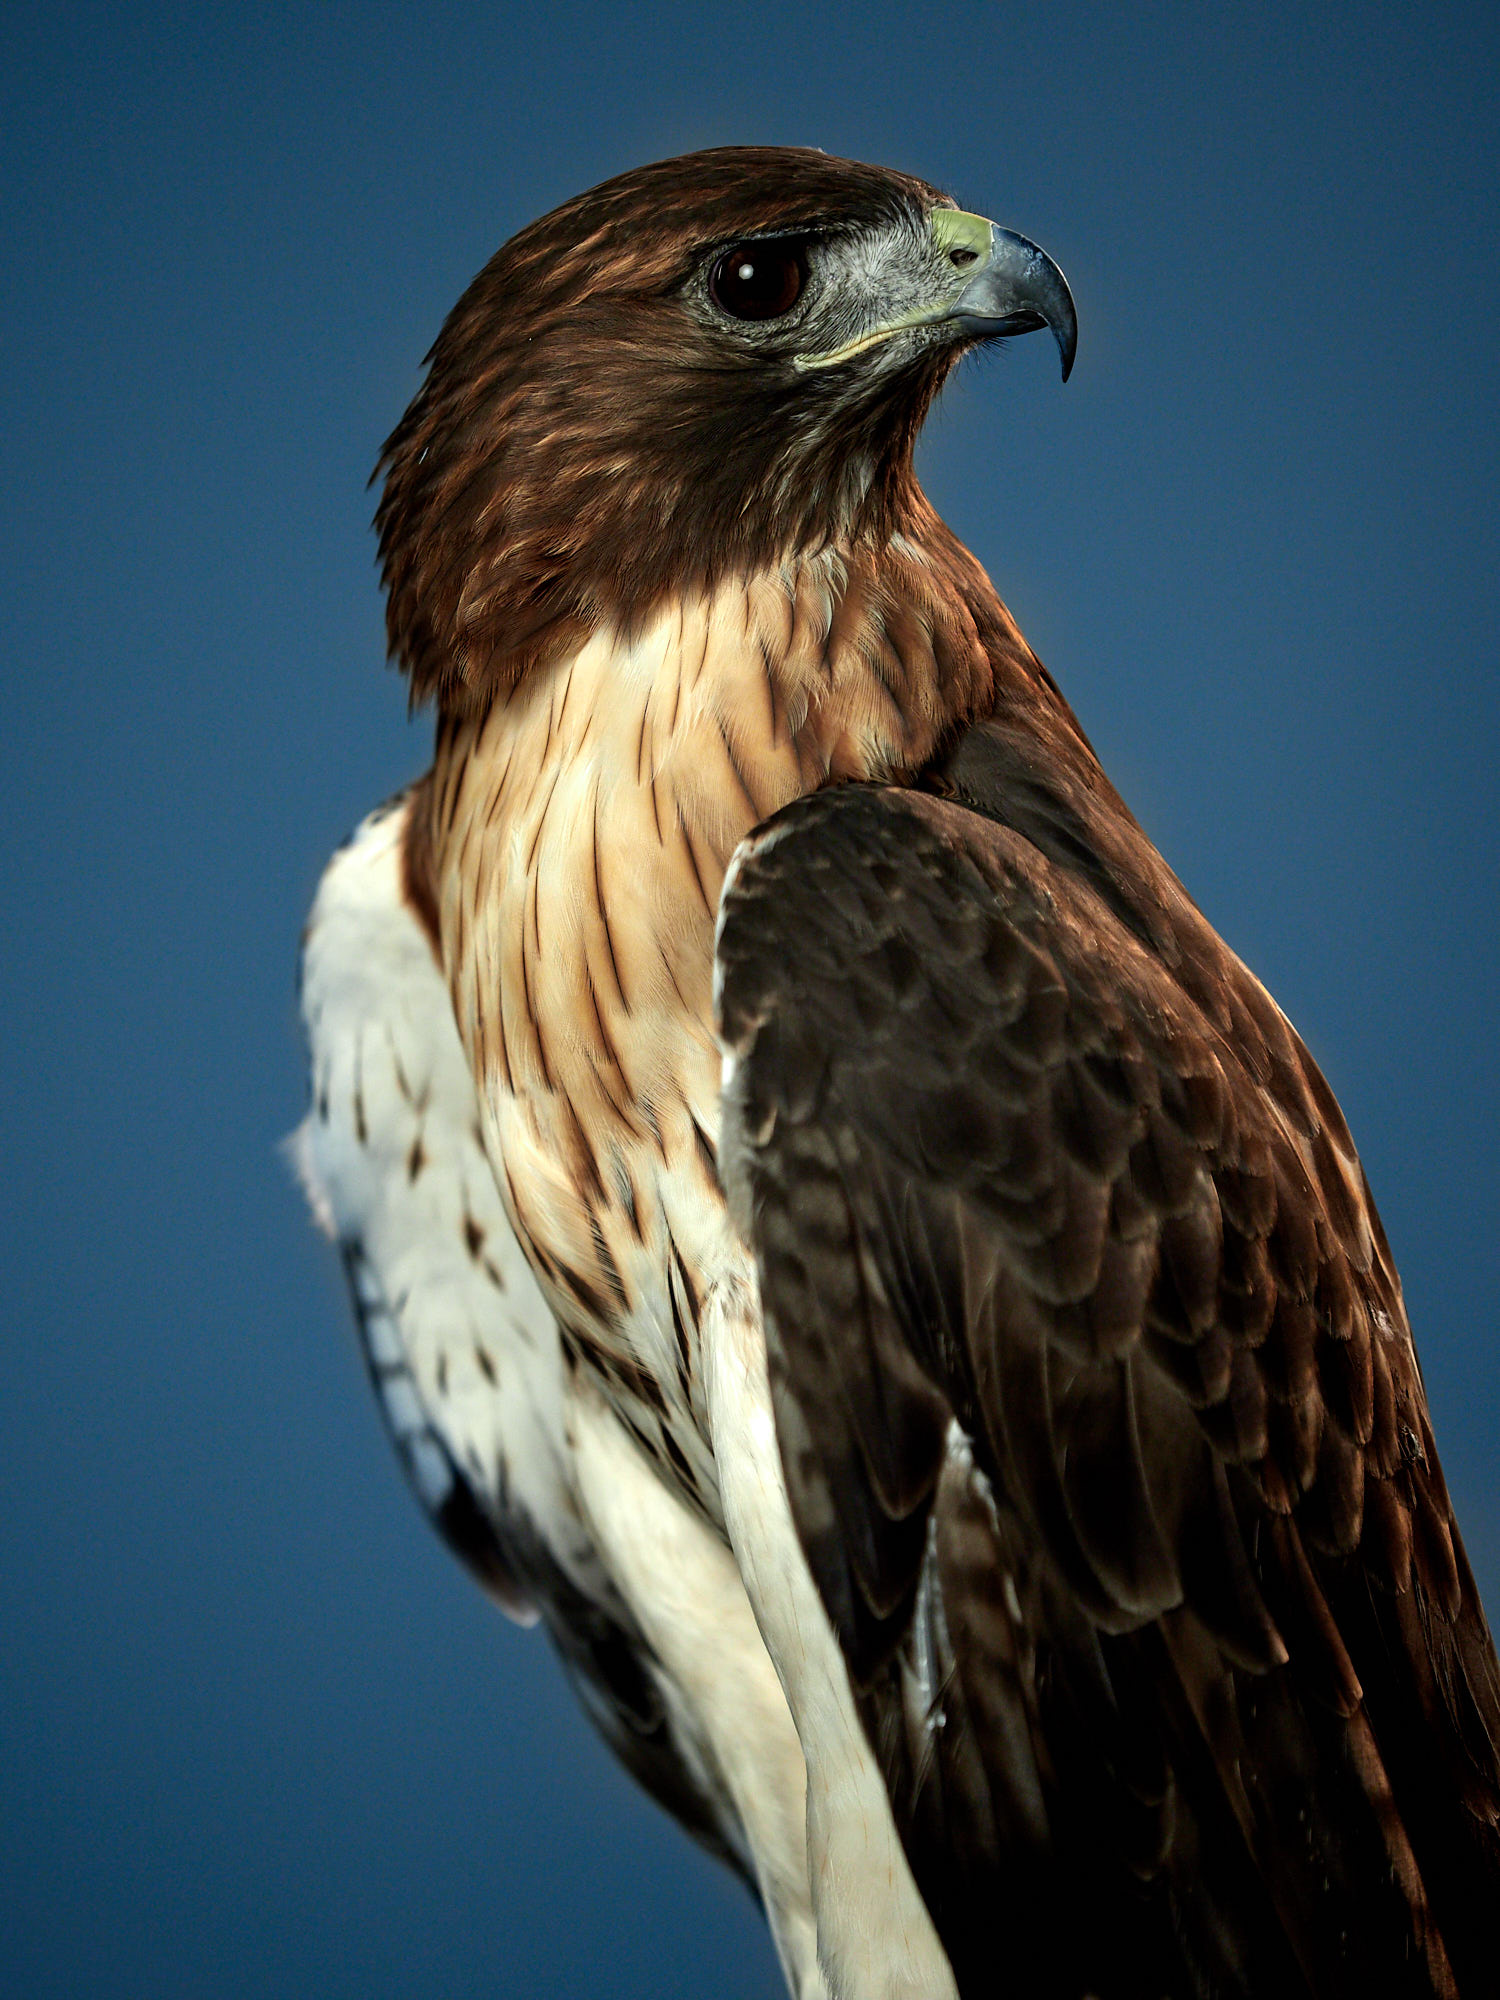 Red tail hawk in portrait in the studio straight out of camera.